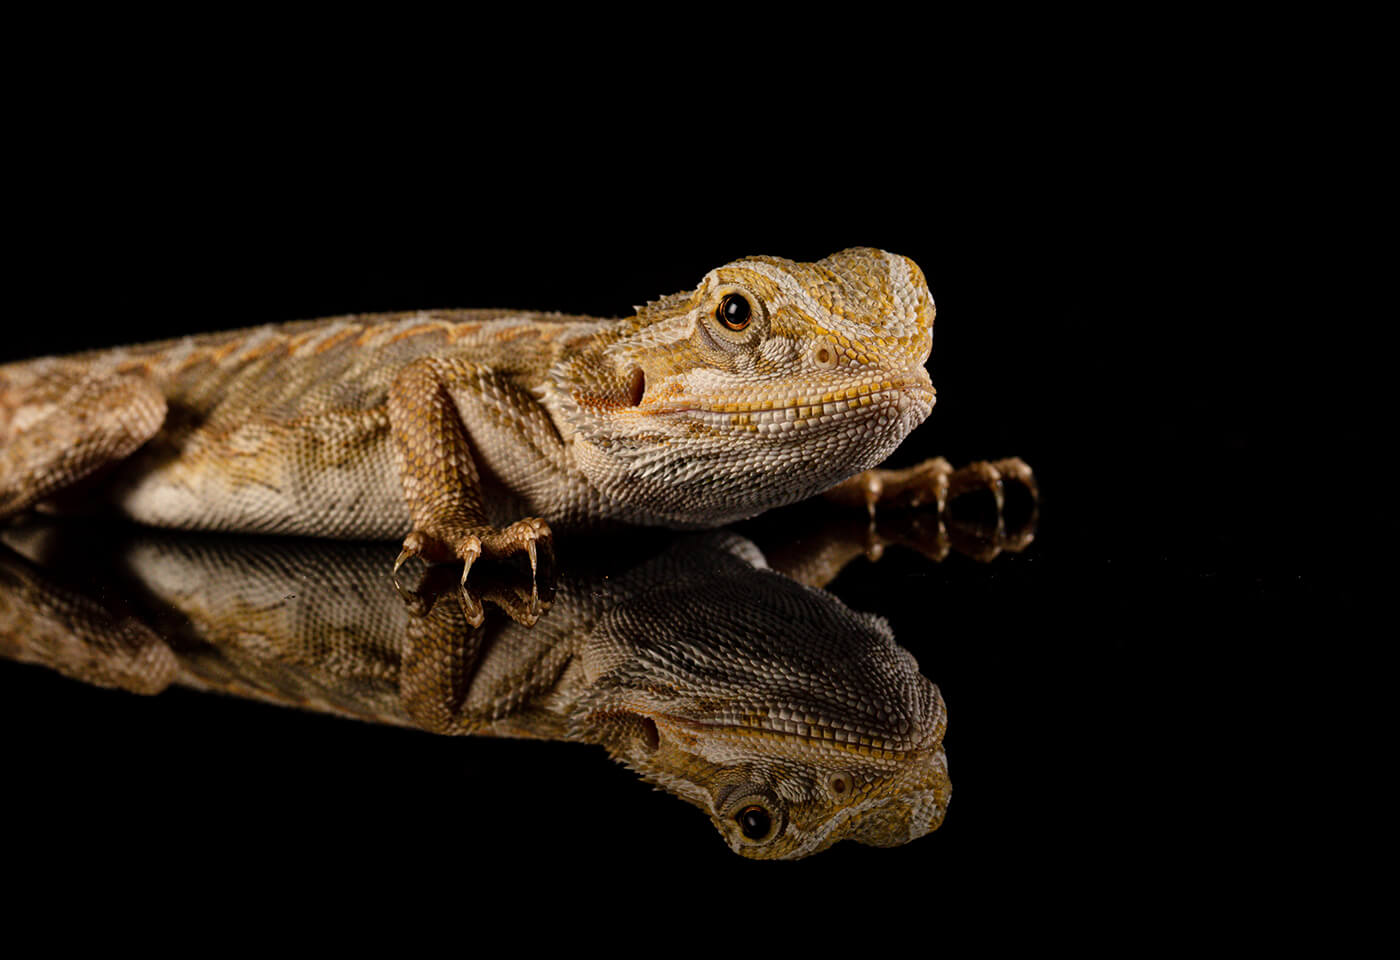 Image of a lizard by Jenn Cooper